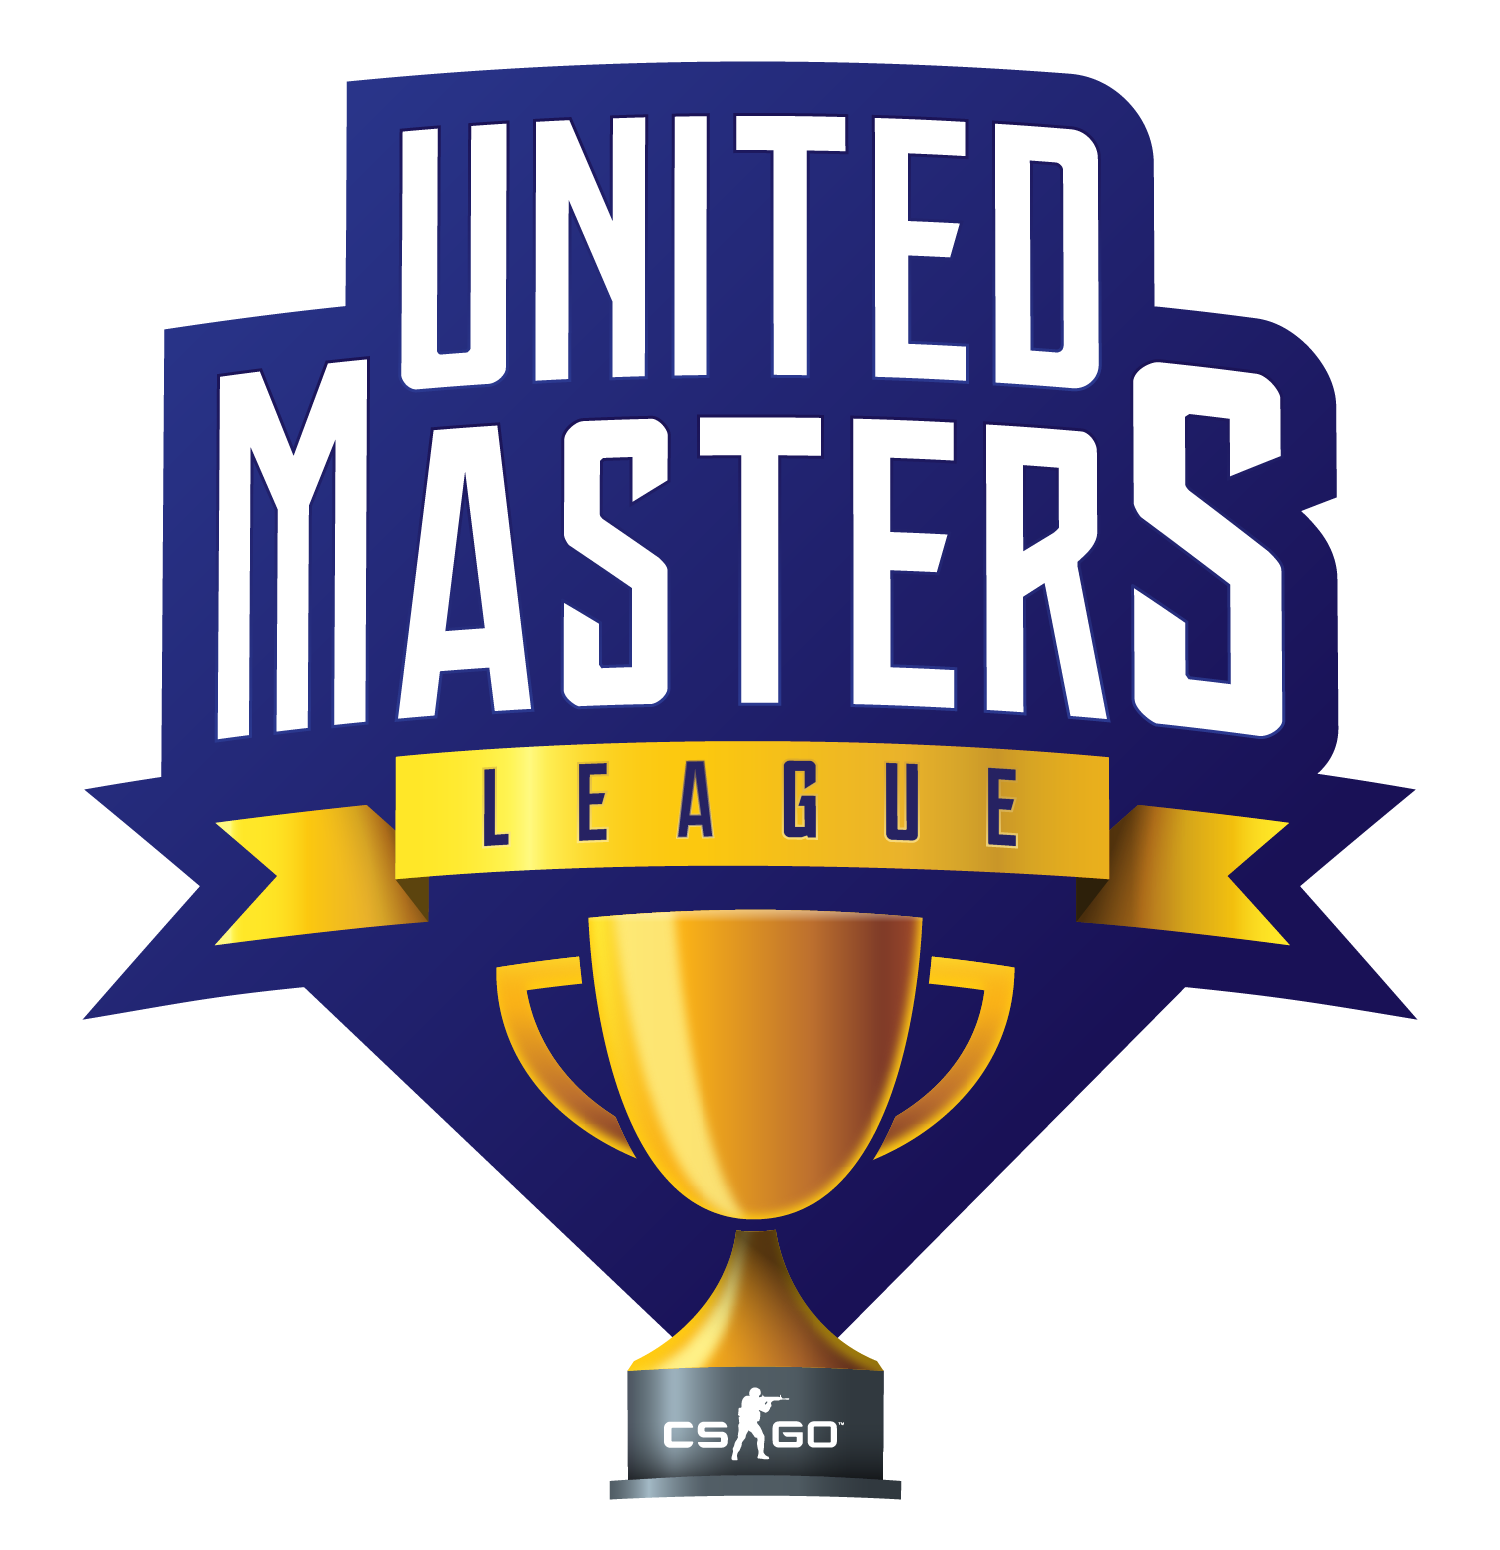 United Masters League Season 1